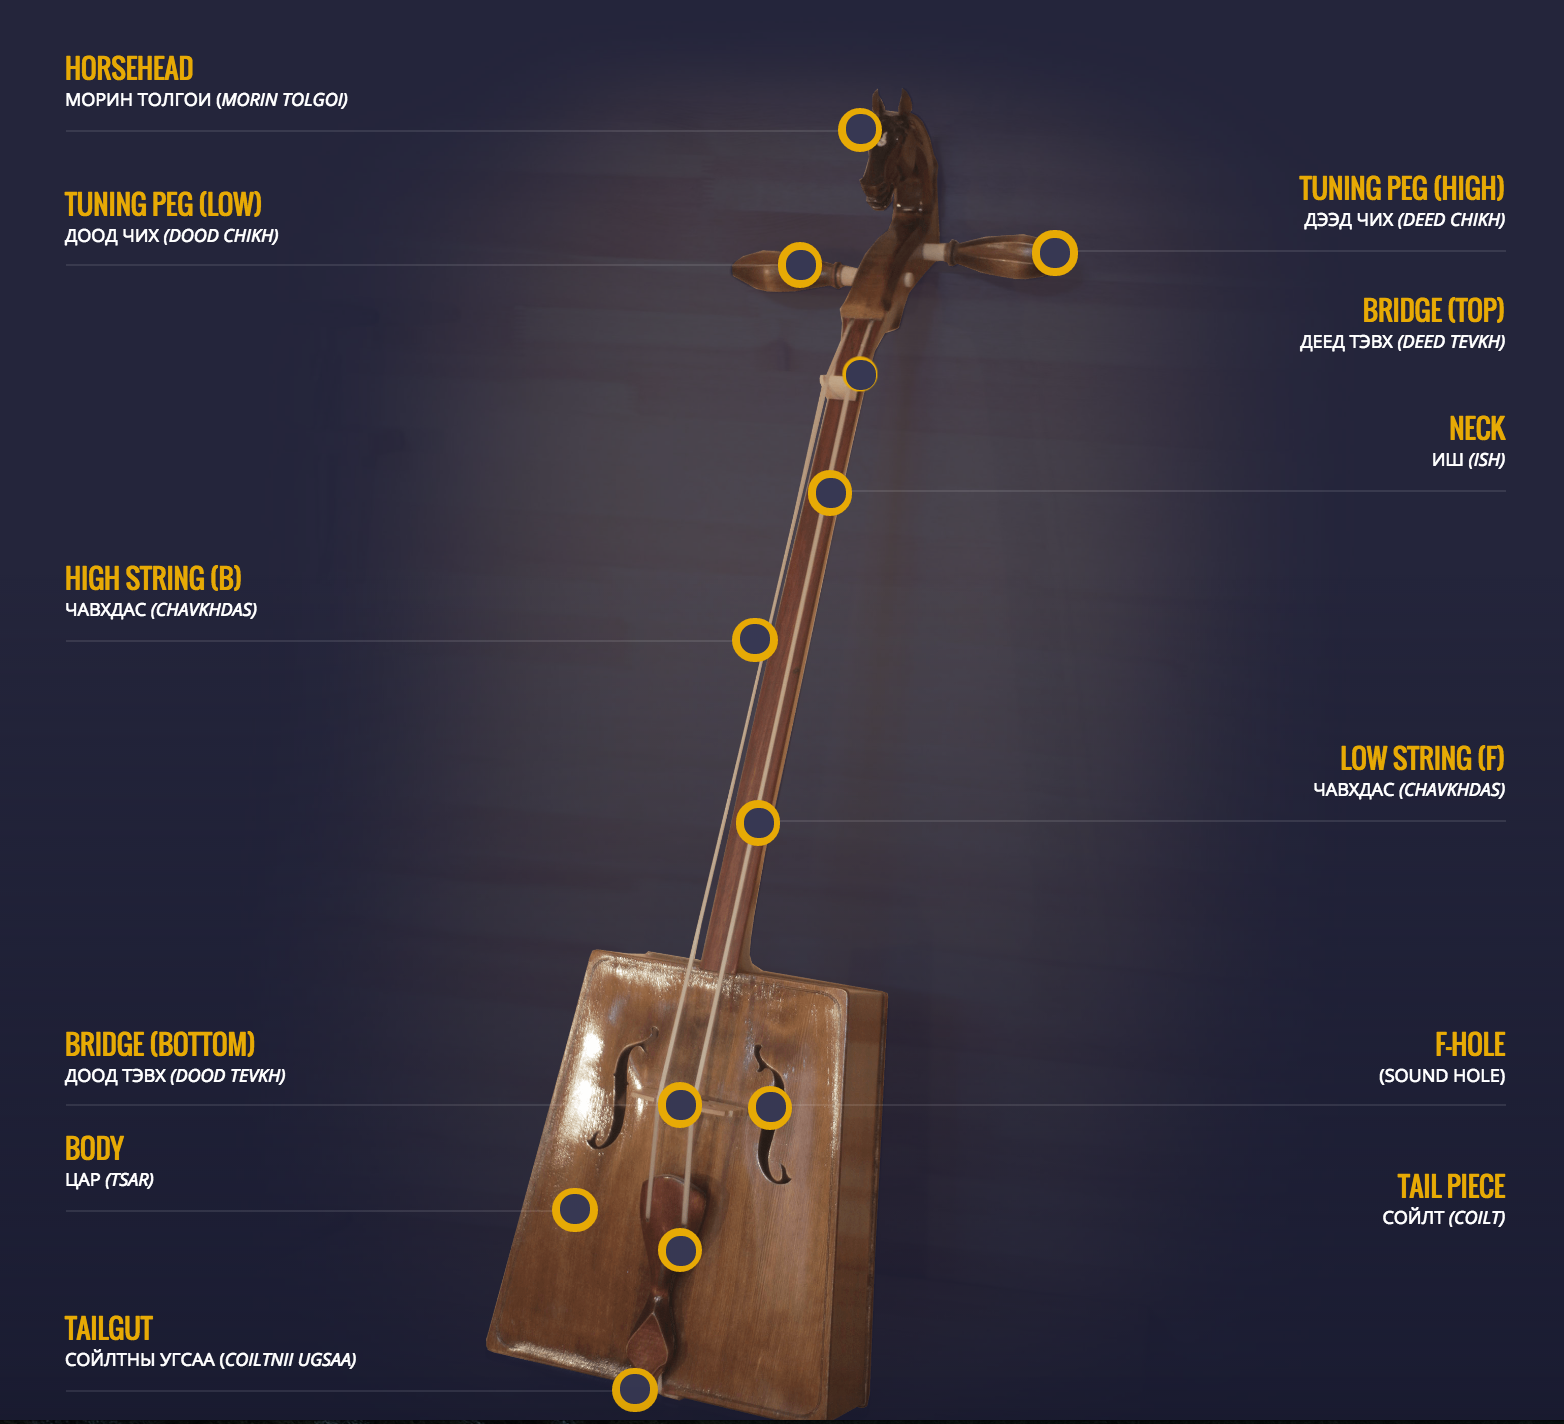 Infographic explaining the horsehead fiddle's various parts